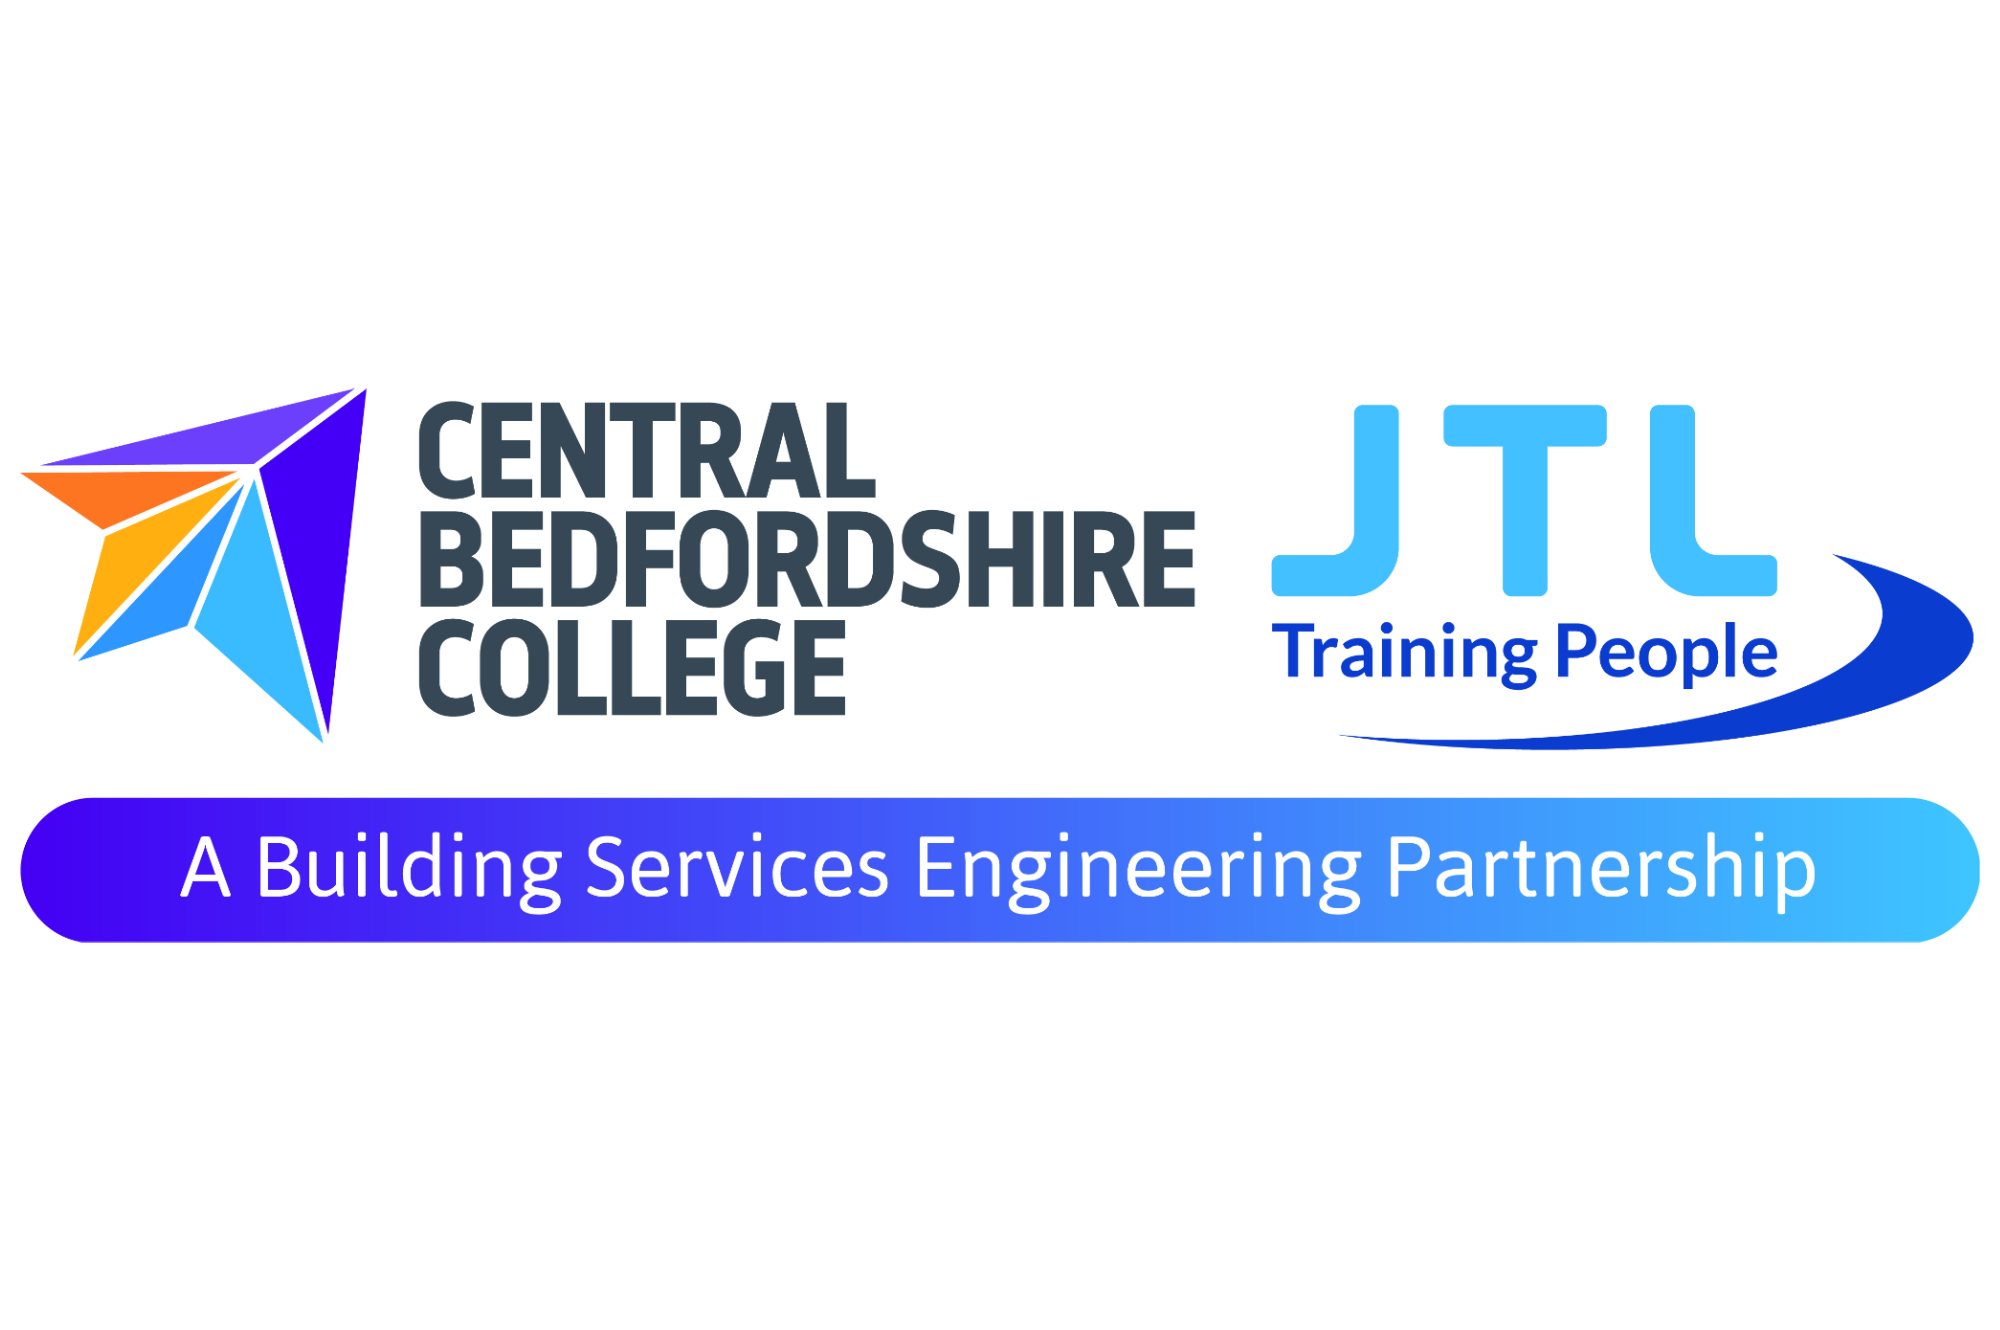 JTL opens apprenticeship applications at Central Bedfordshire College